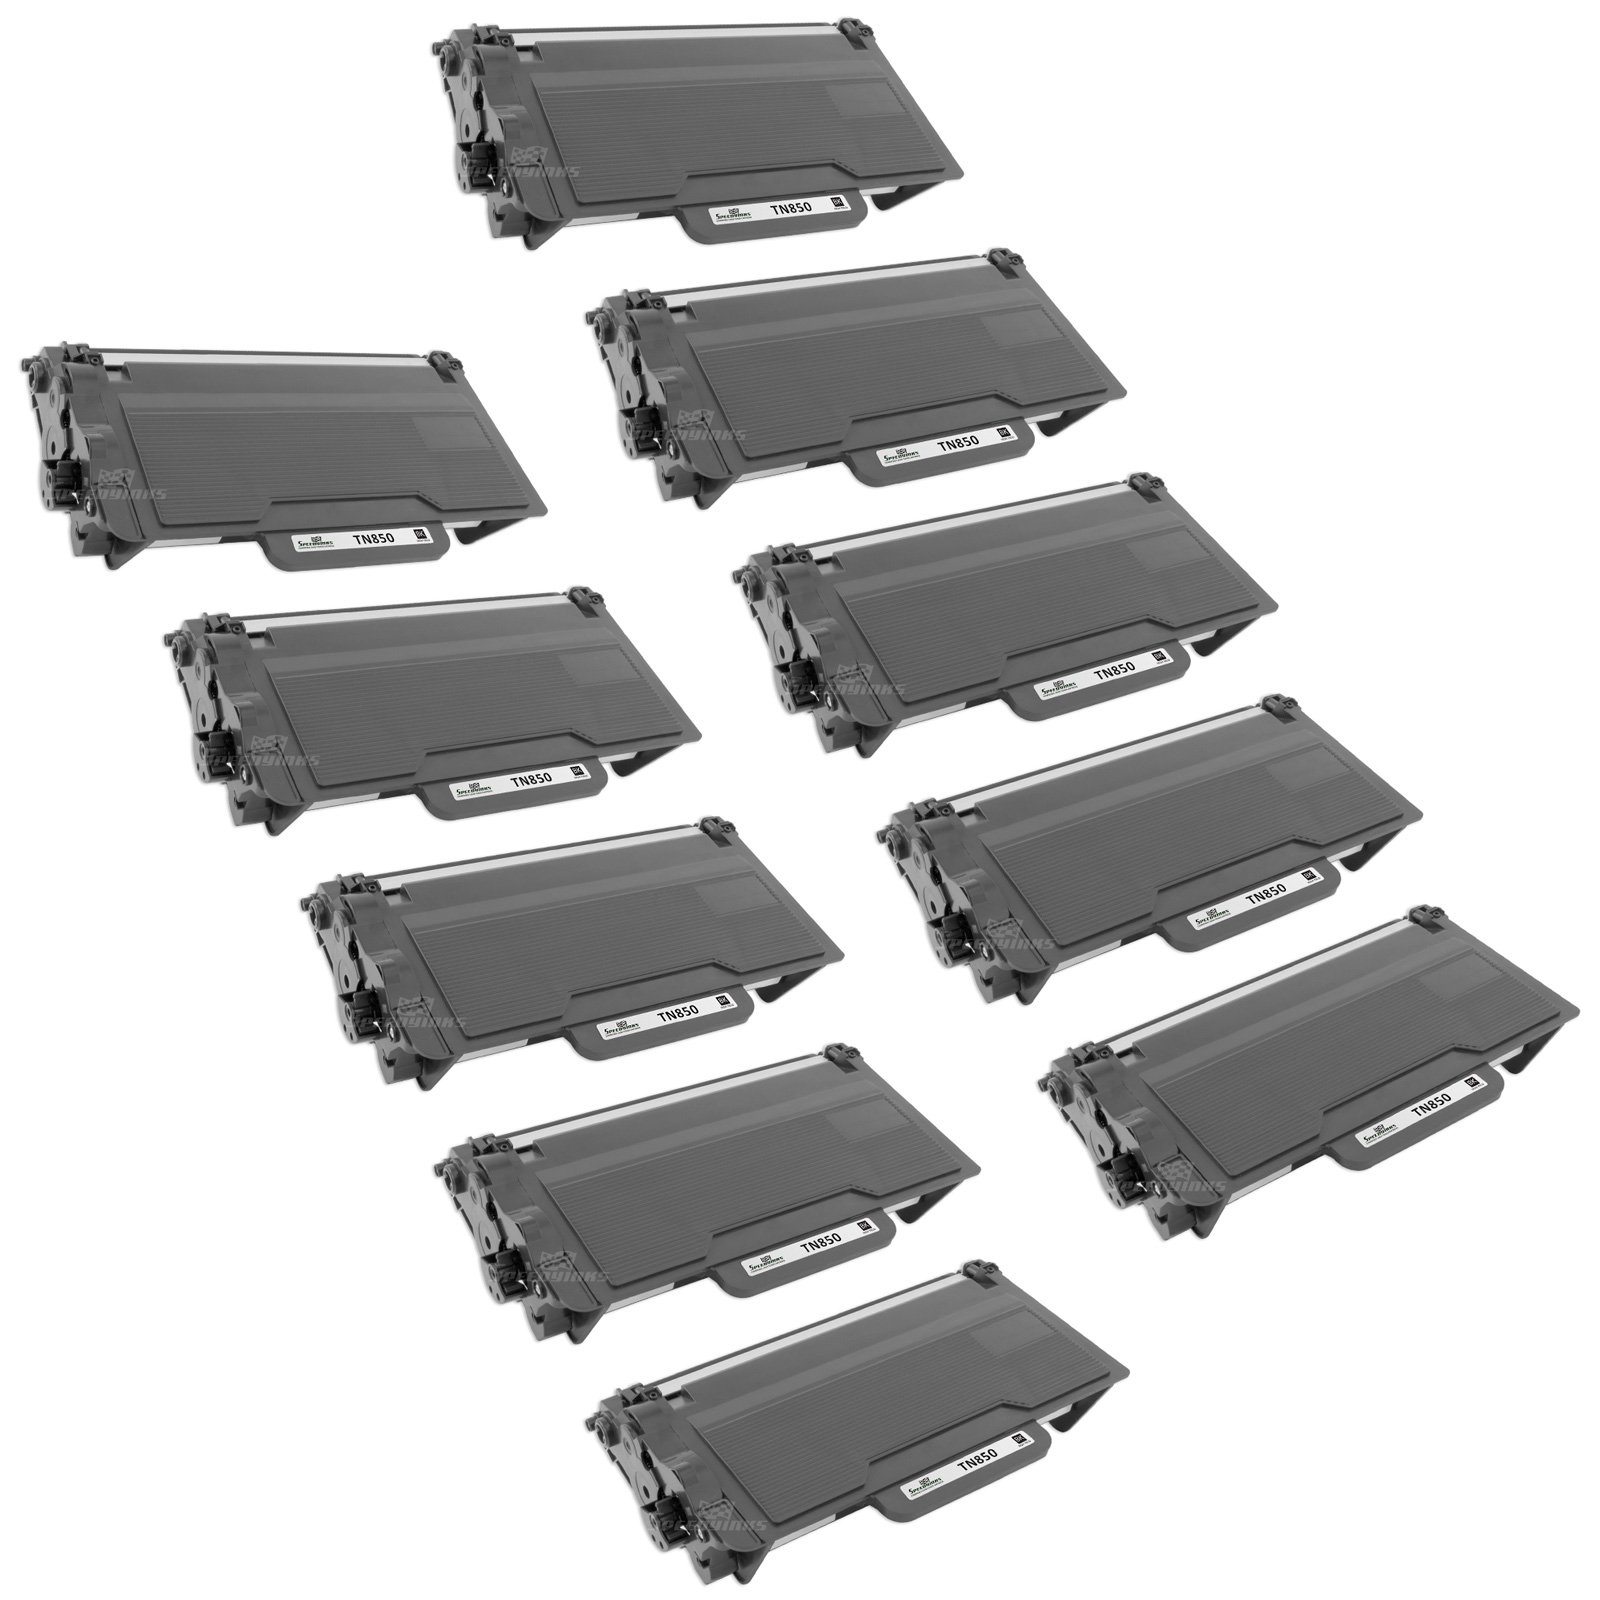 Speedy Inks - 10PK Compatible Brother TN850 High Yield Black Toner Cartridge for use in Brother HL-L6200DW, MFC-L5800DW, MFC-L5850DW, MFC-L5900DW, MFC-L5700DW, MFC-L6700DW, MFC-L6750DW, MFC-L6800DW